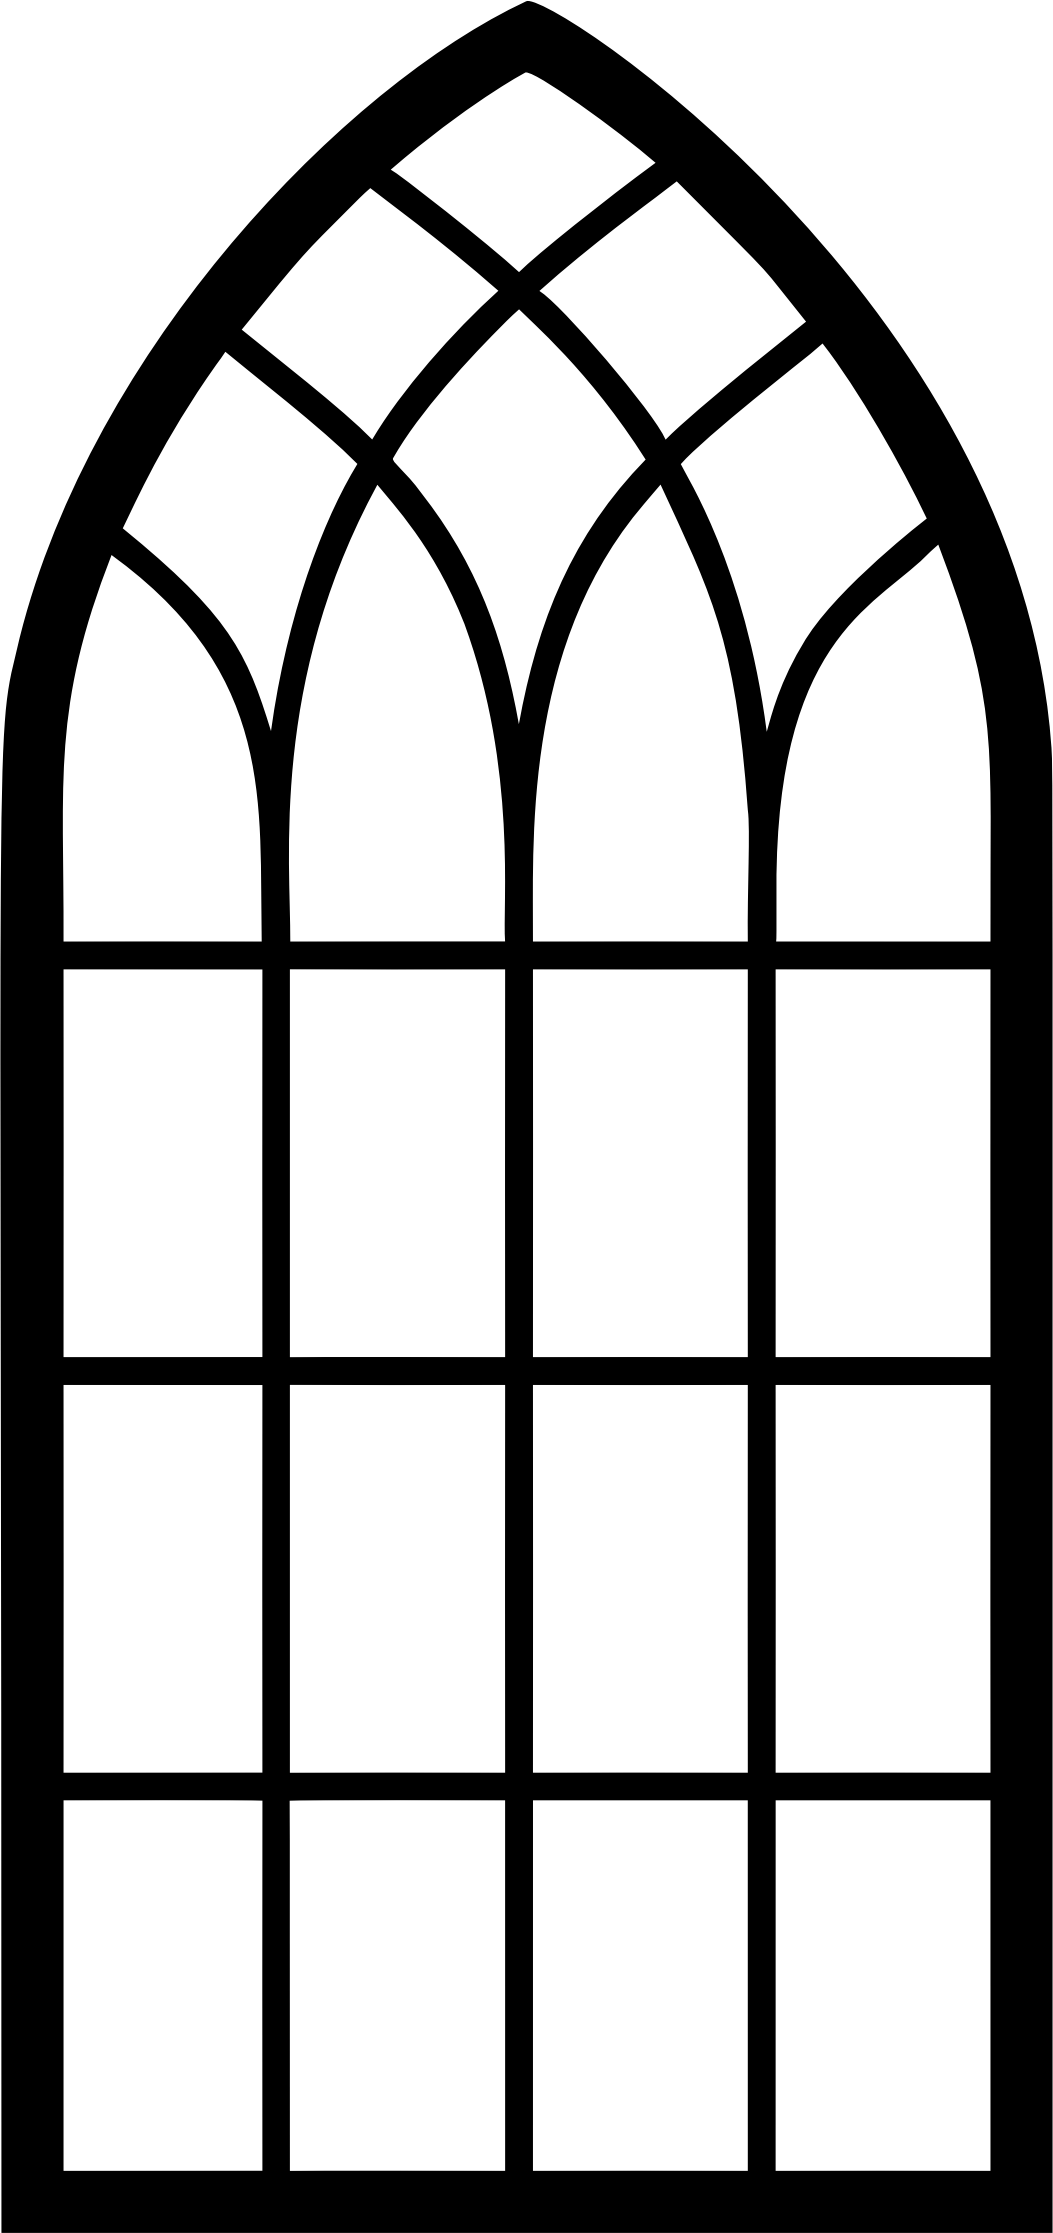 gothic vector cathedral window